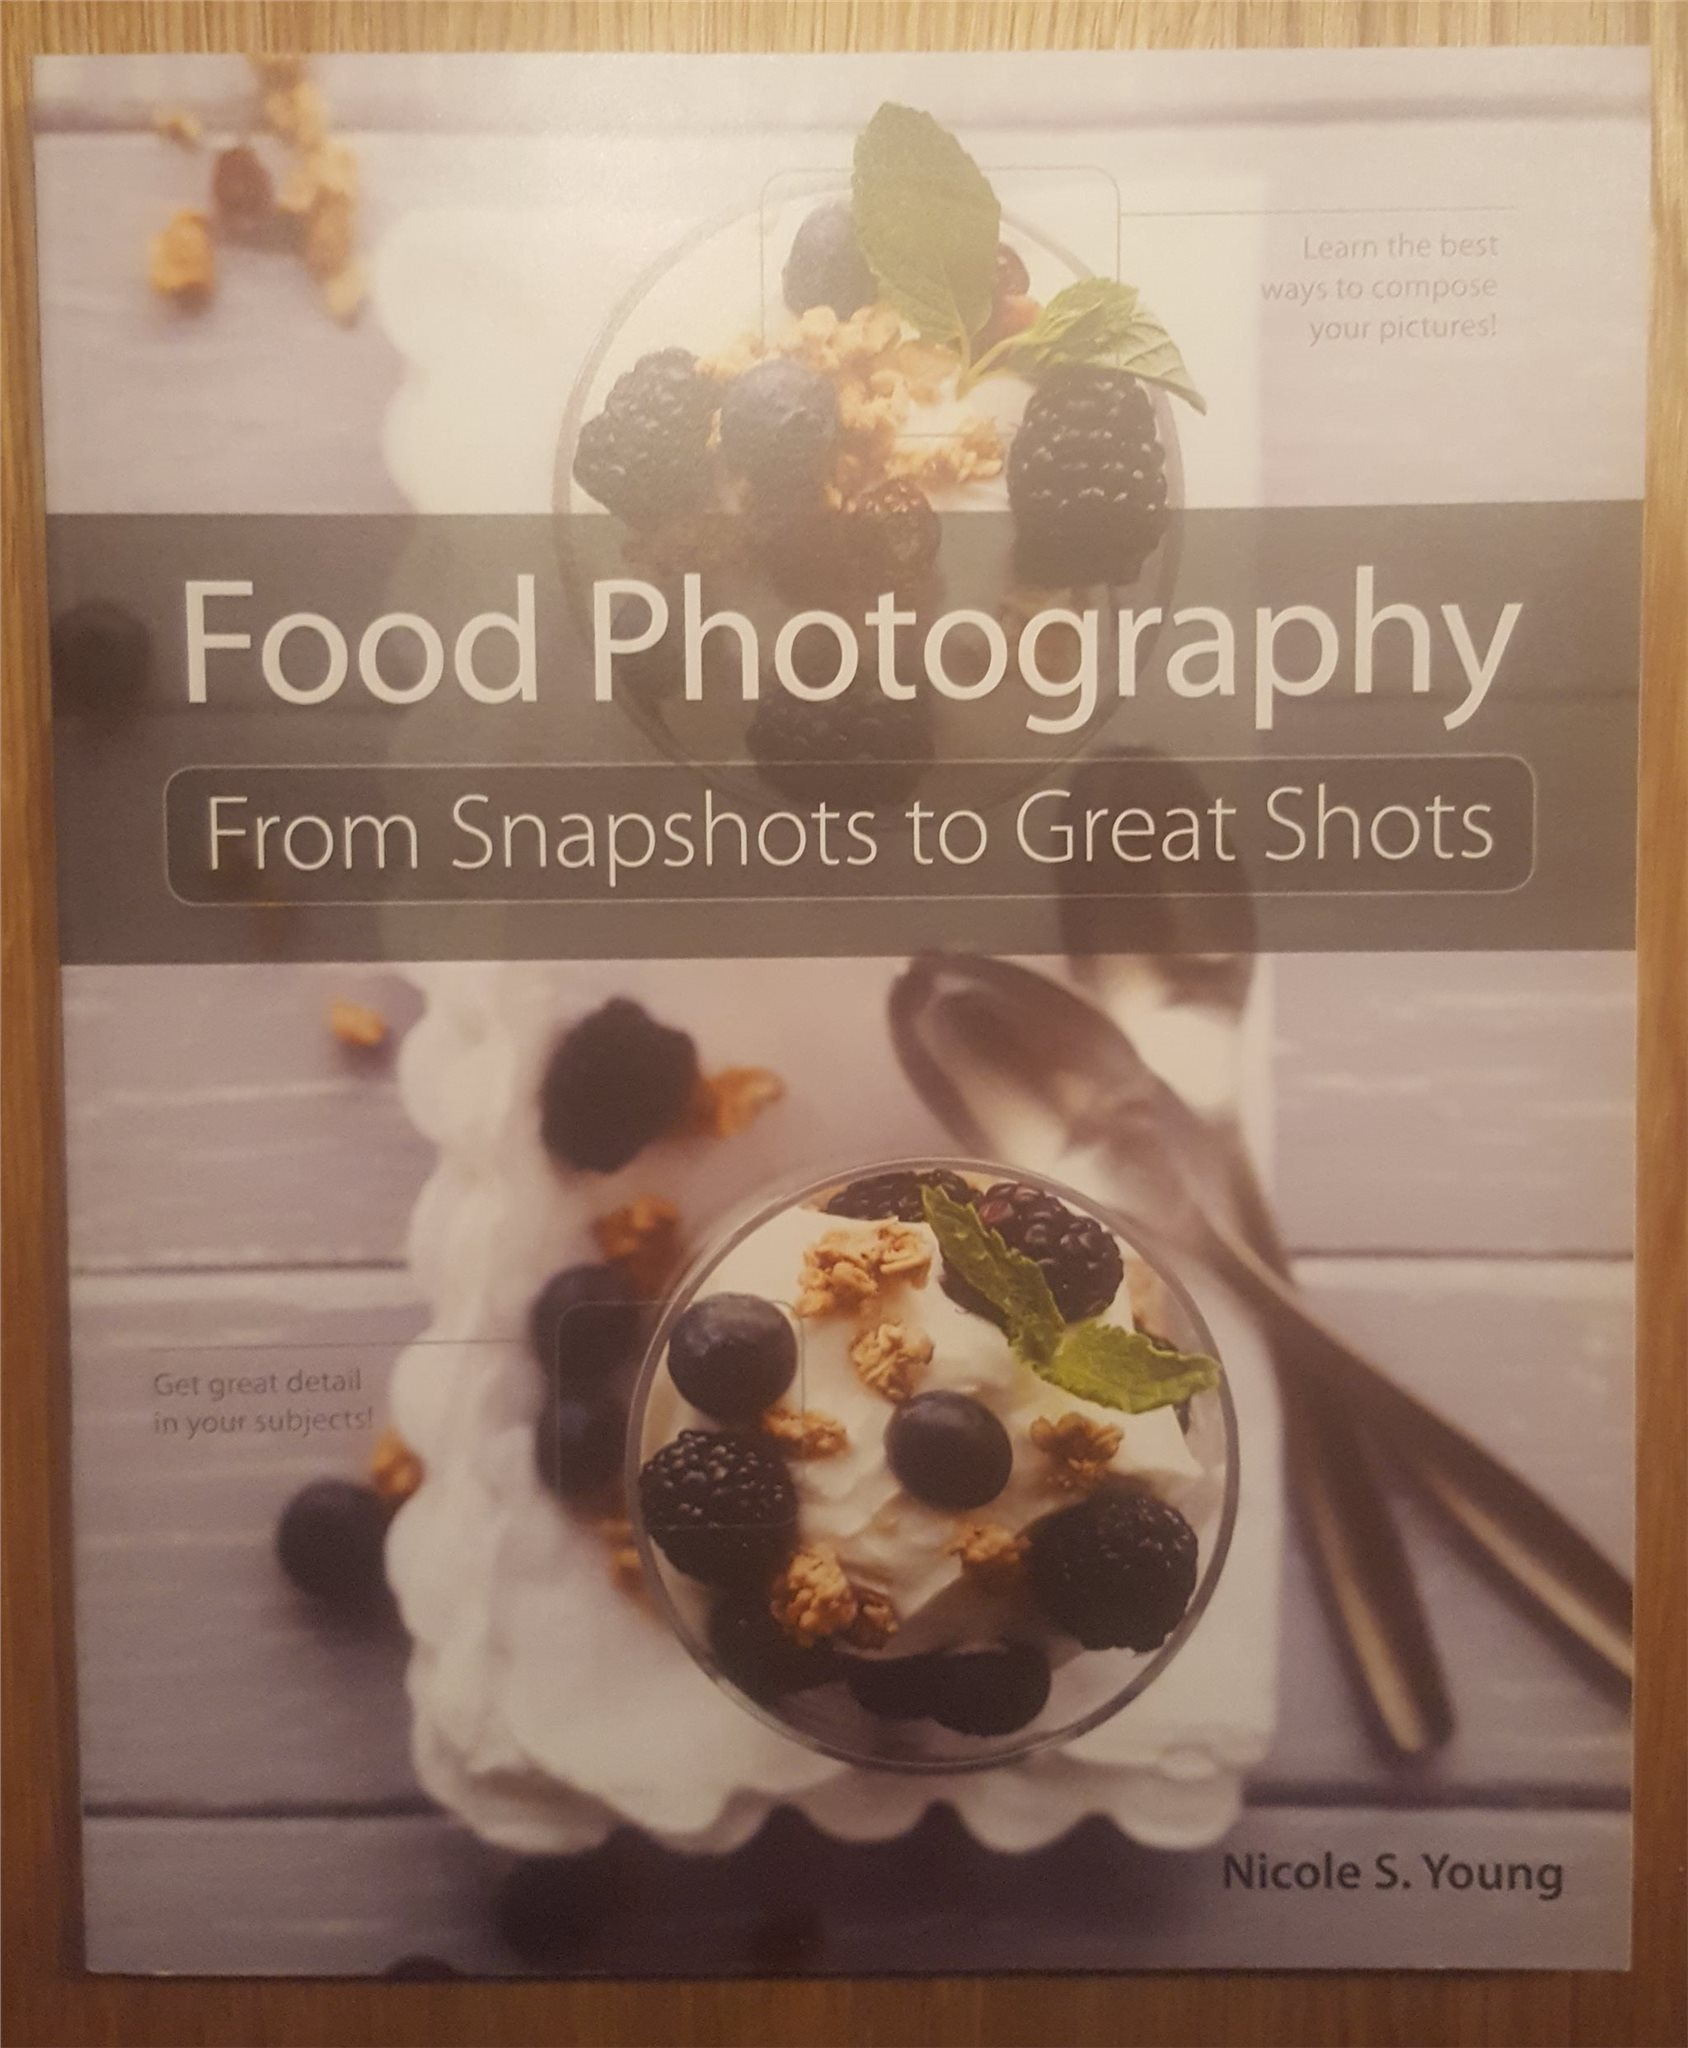 Nicole S. Young - Food Photography: From Snapshots to Great Shots